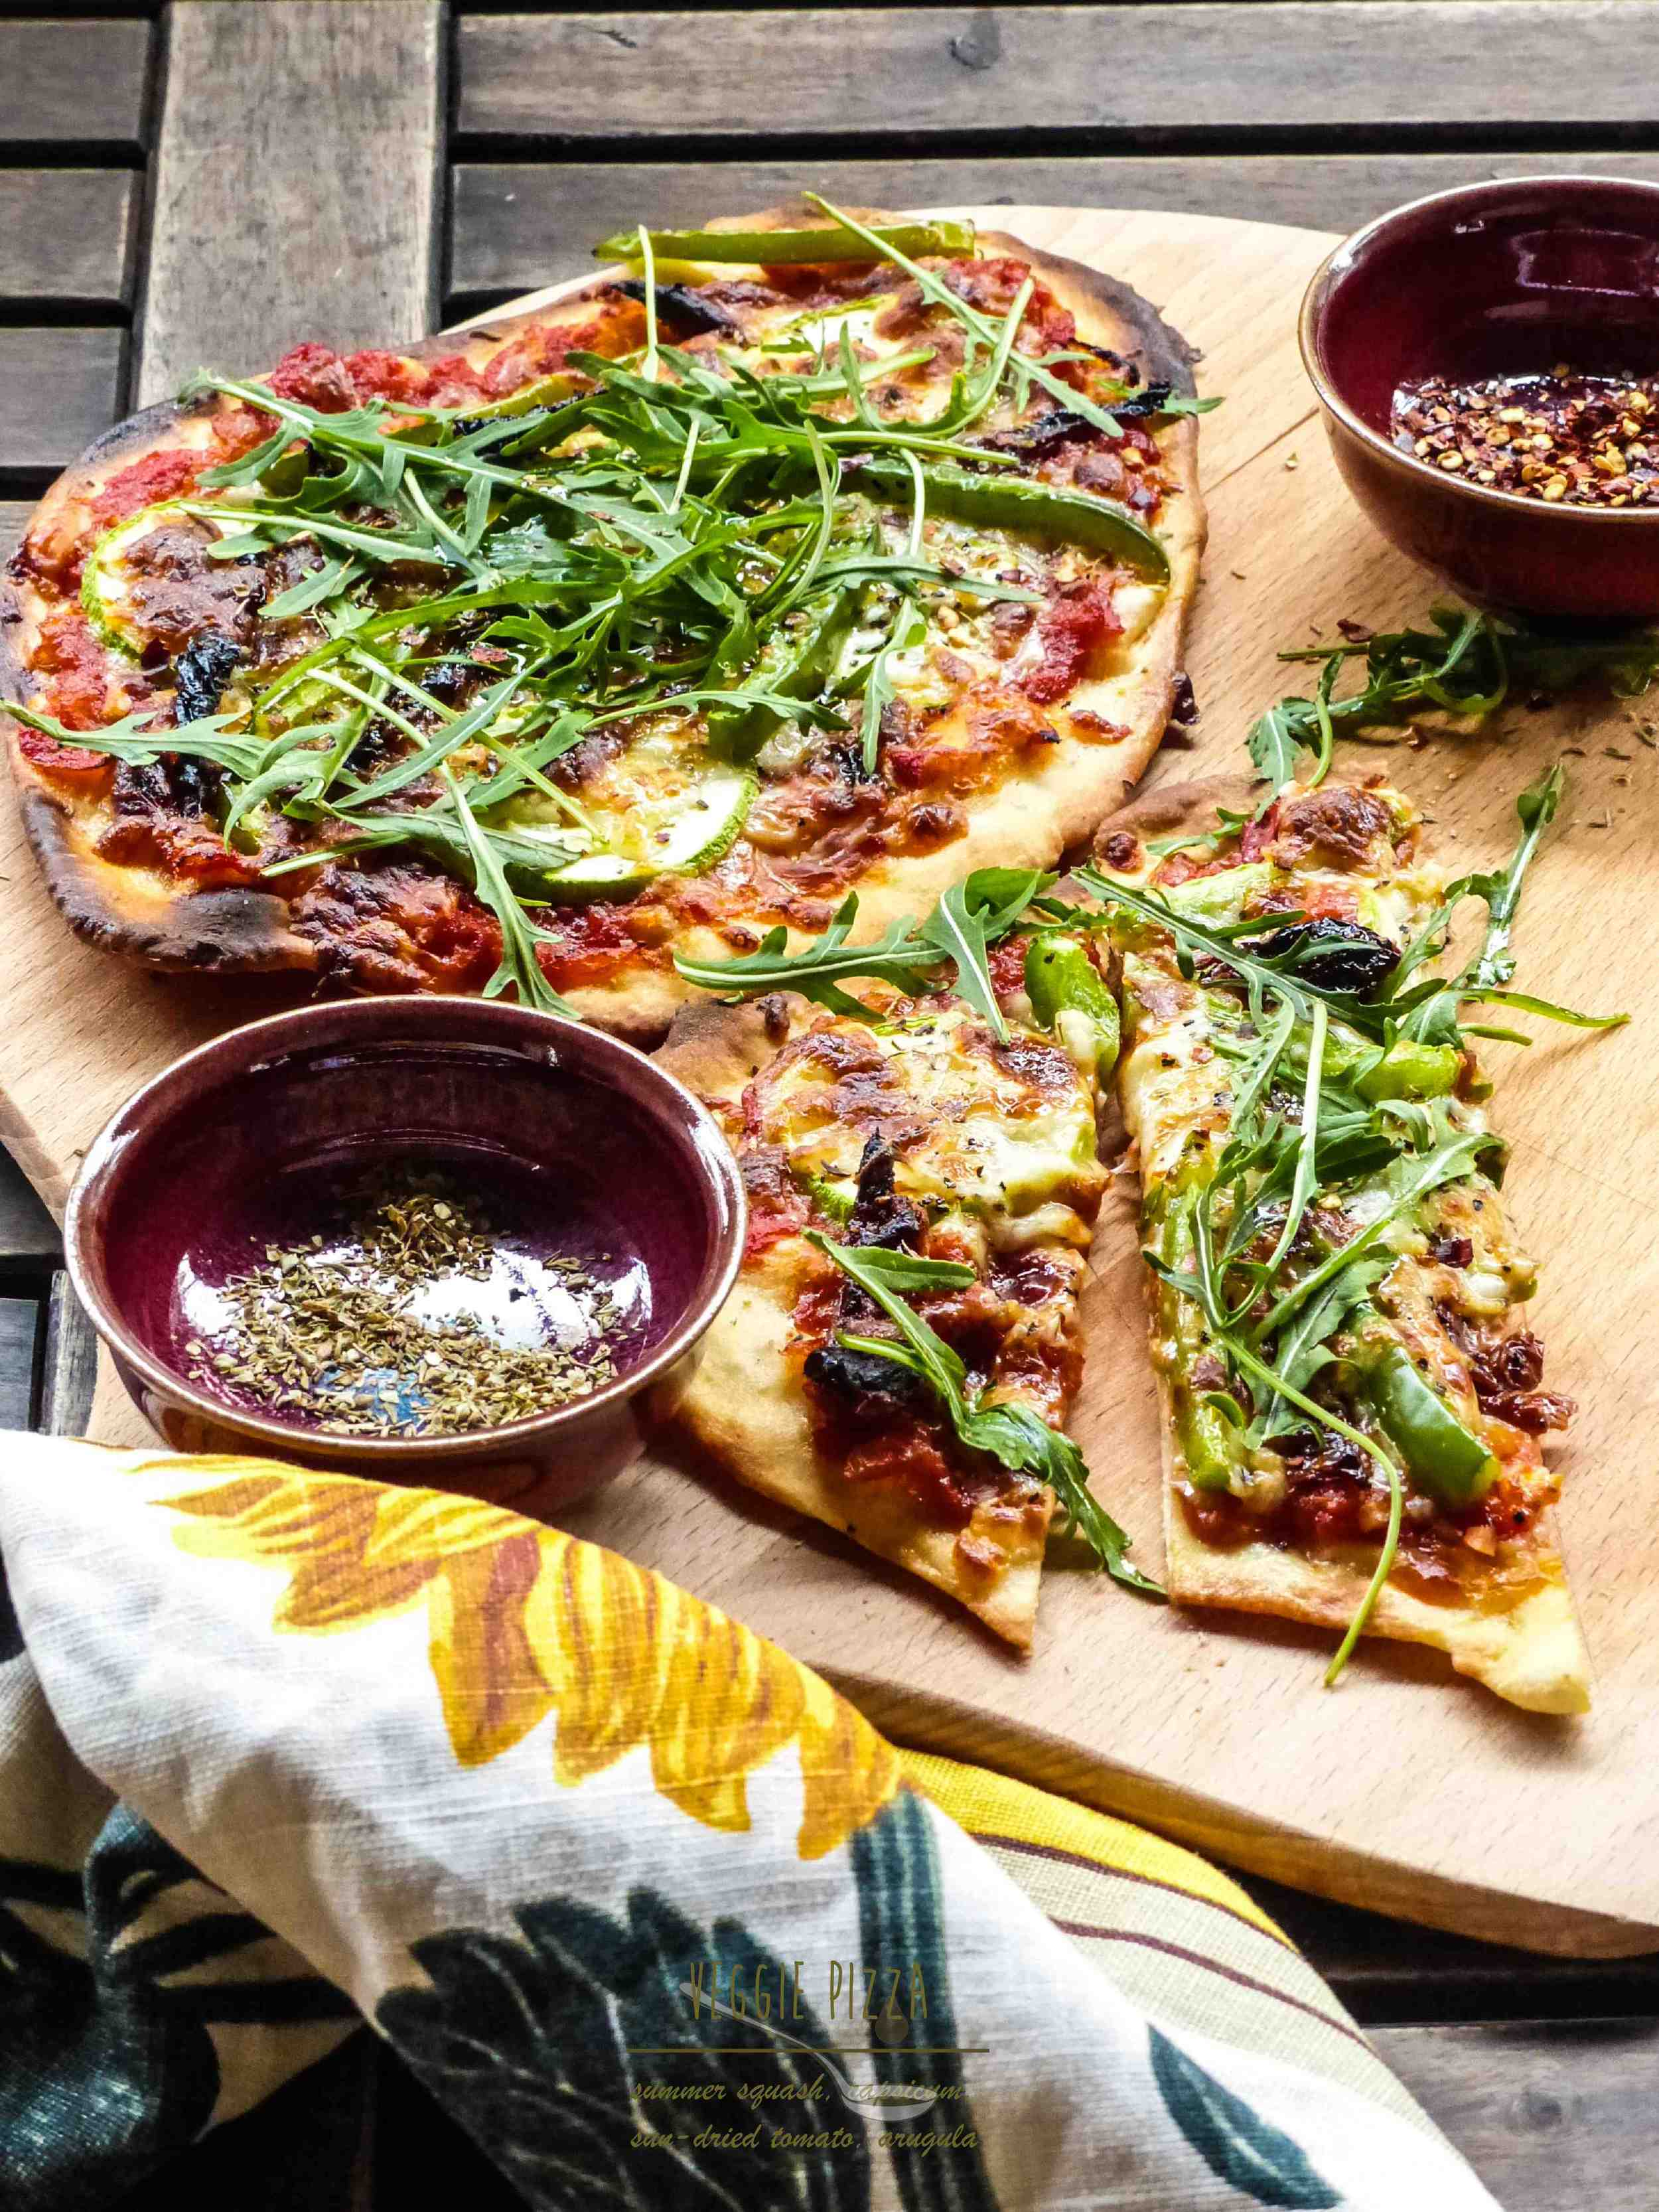 This pizza dough recipe is from Jamie Oliver's website. Click  here  to go to his recipe.